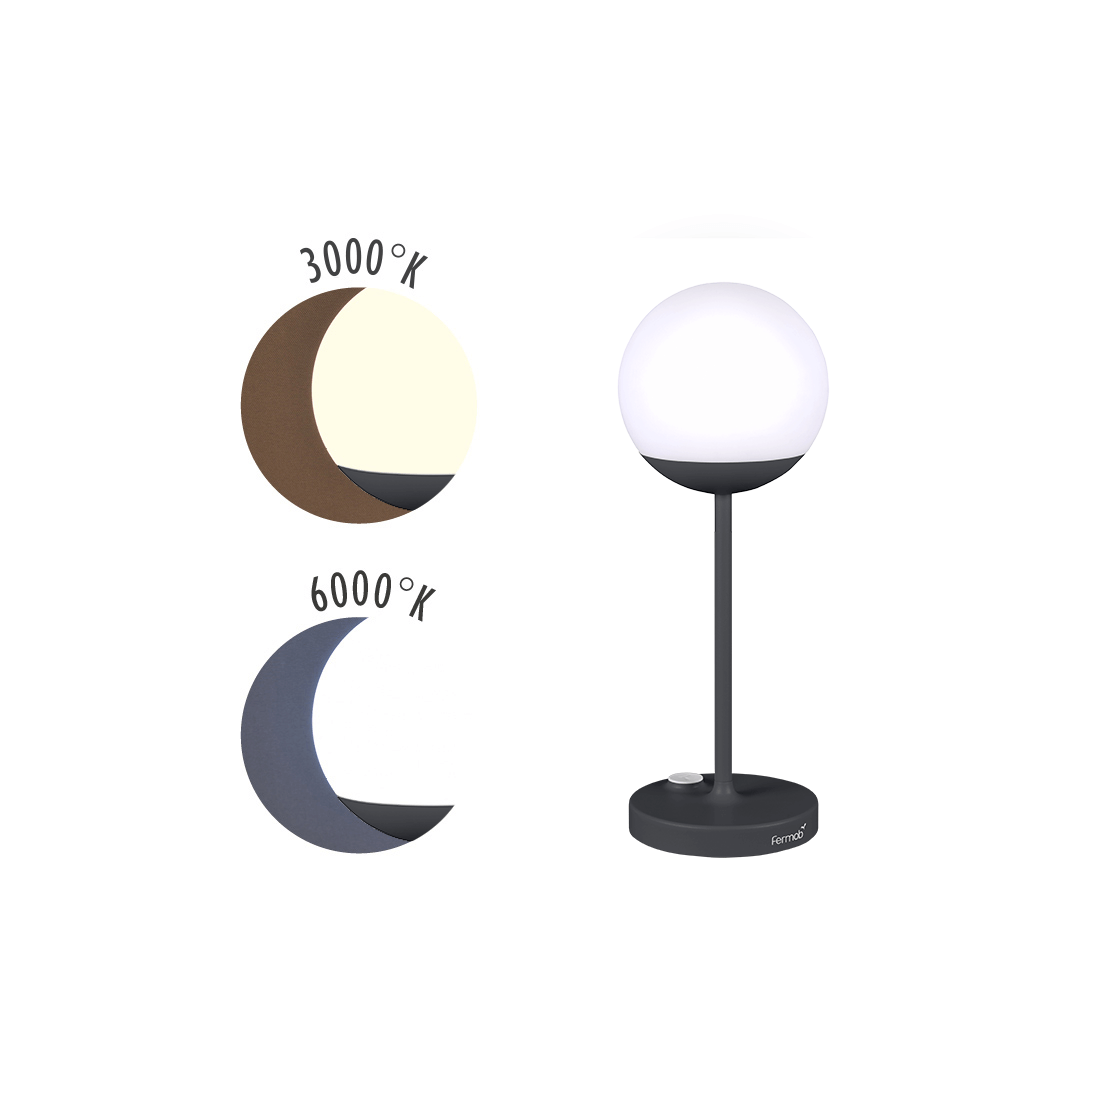 MOOON_LAMPE_H41_LUM_FROIDE_CARBONE_T°